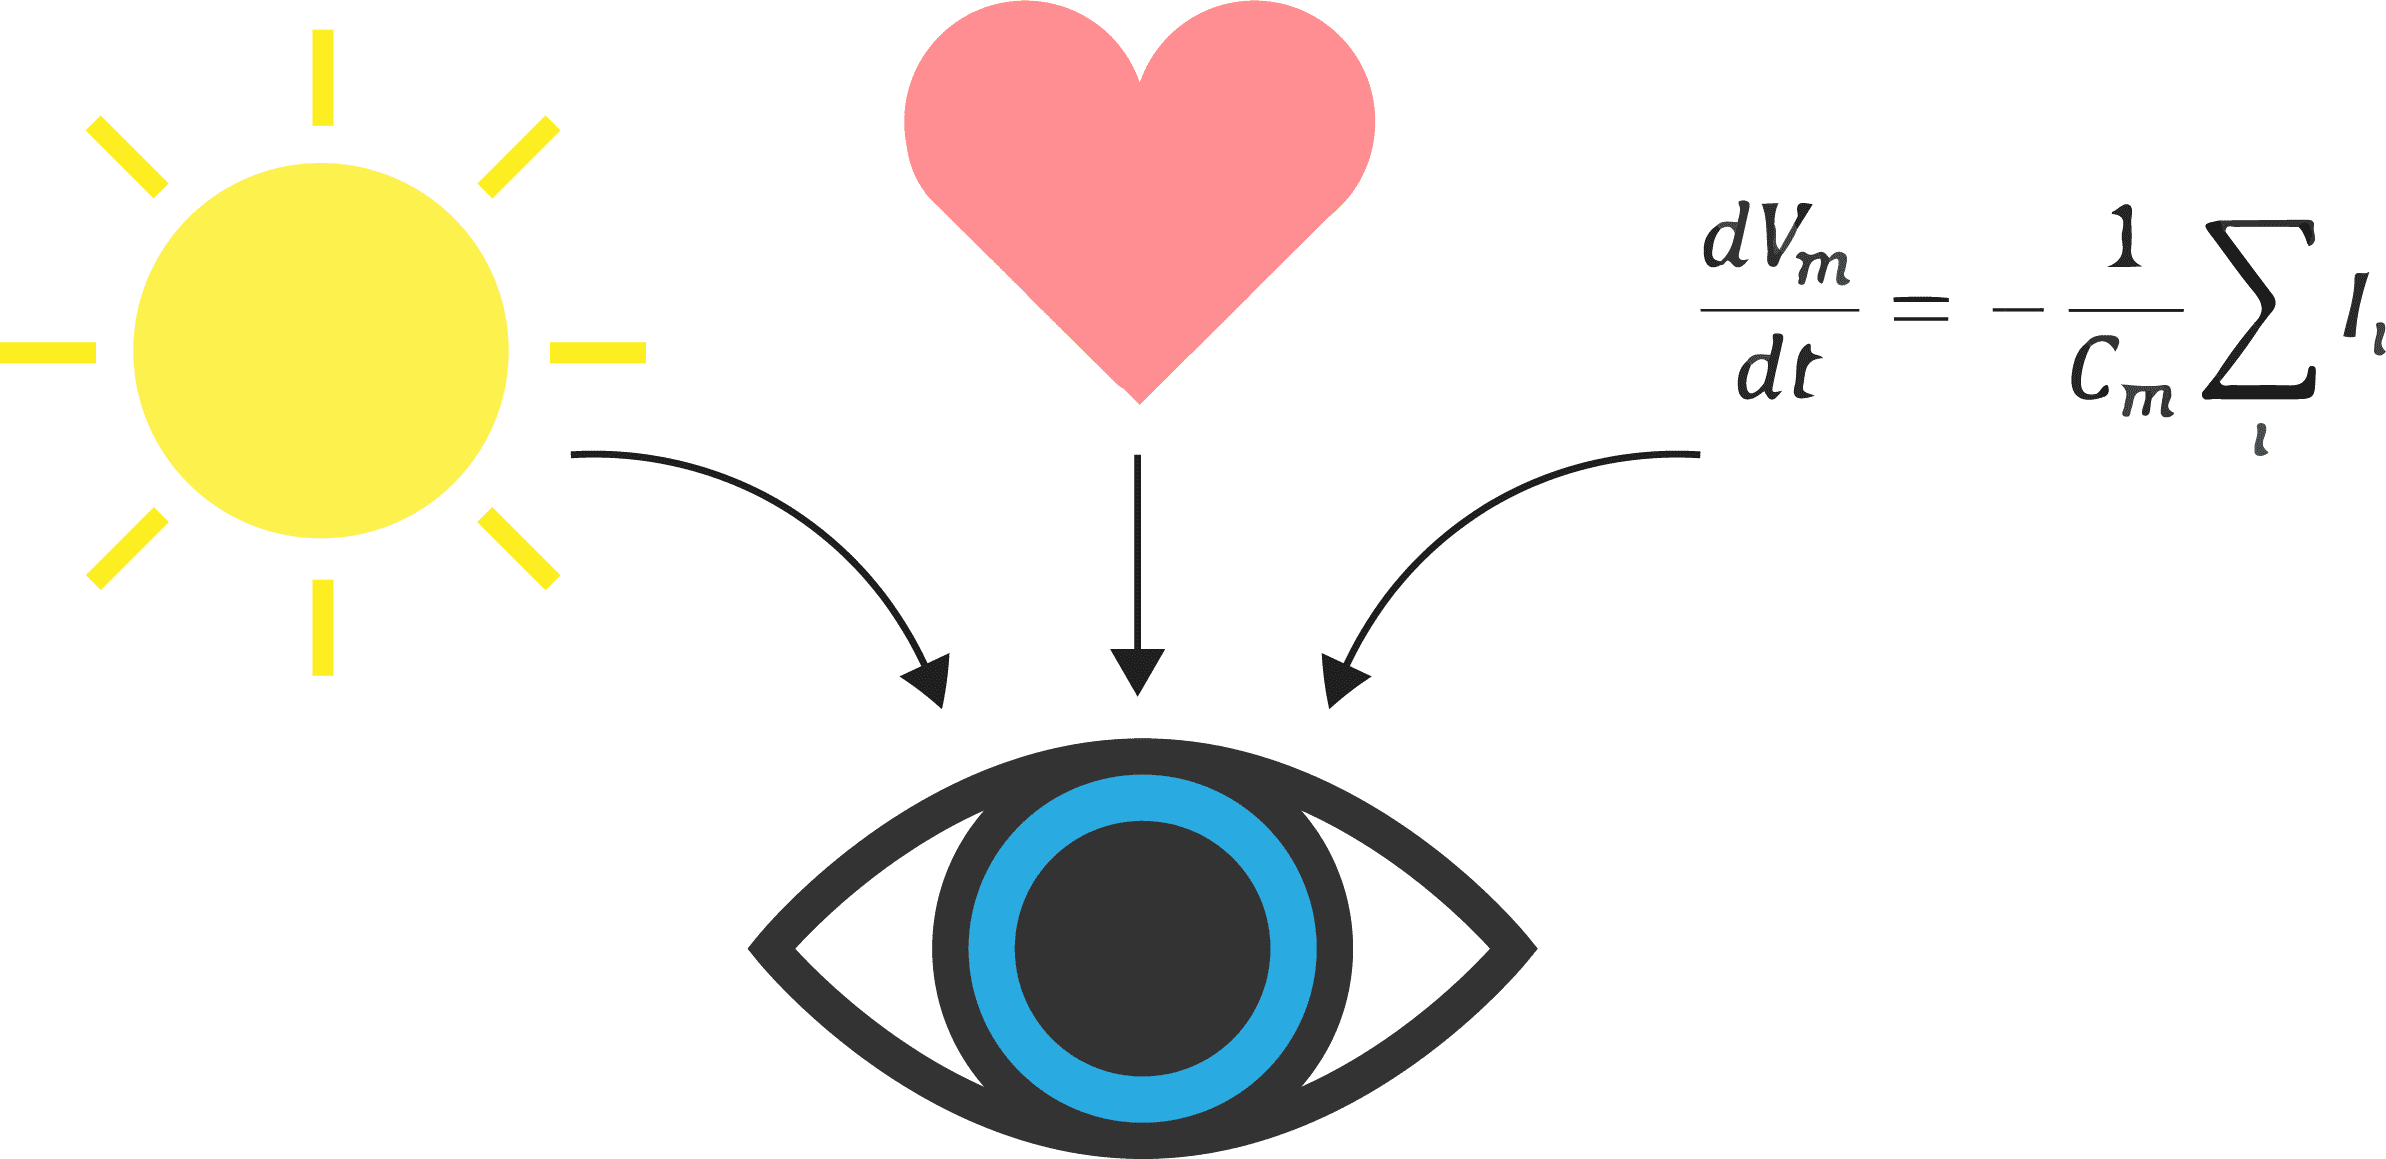 pupil dilation stimuli emotion